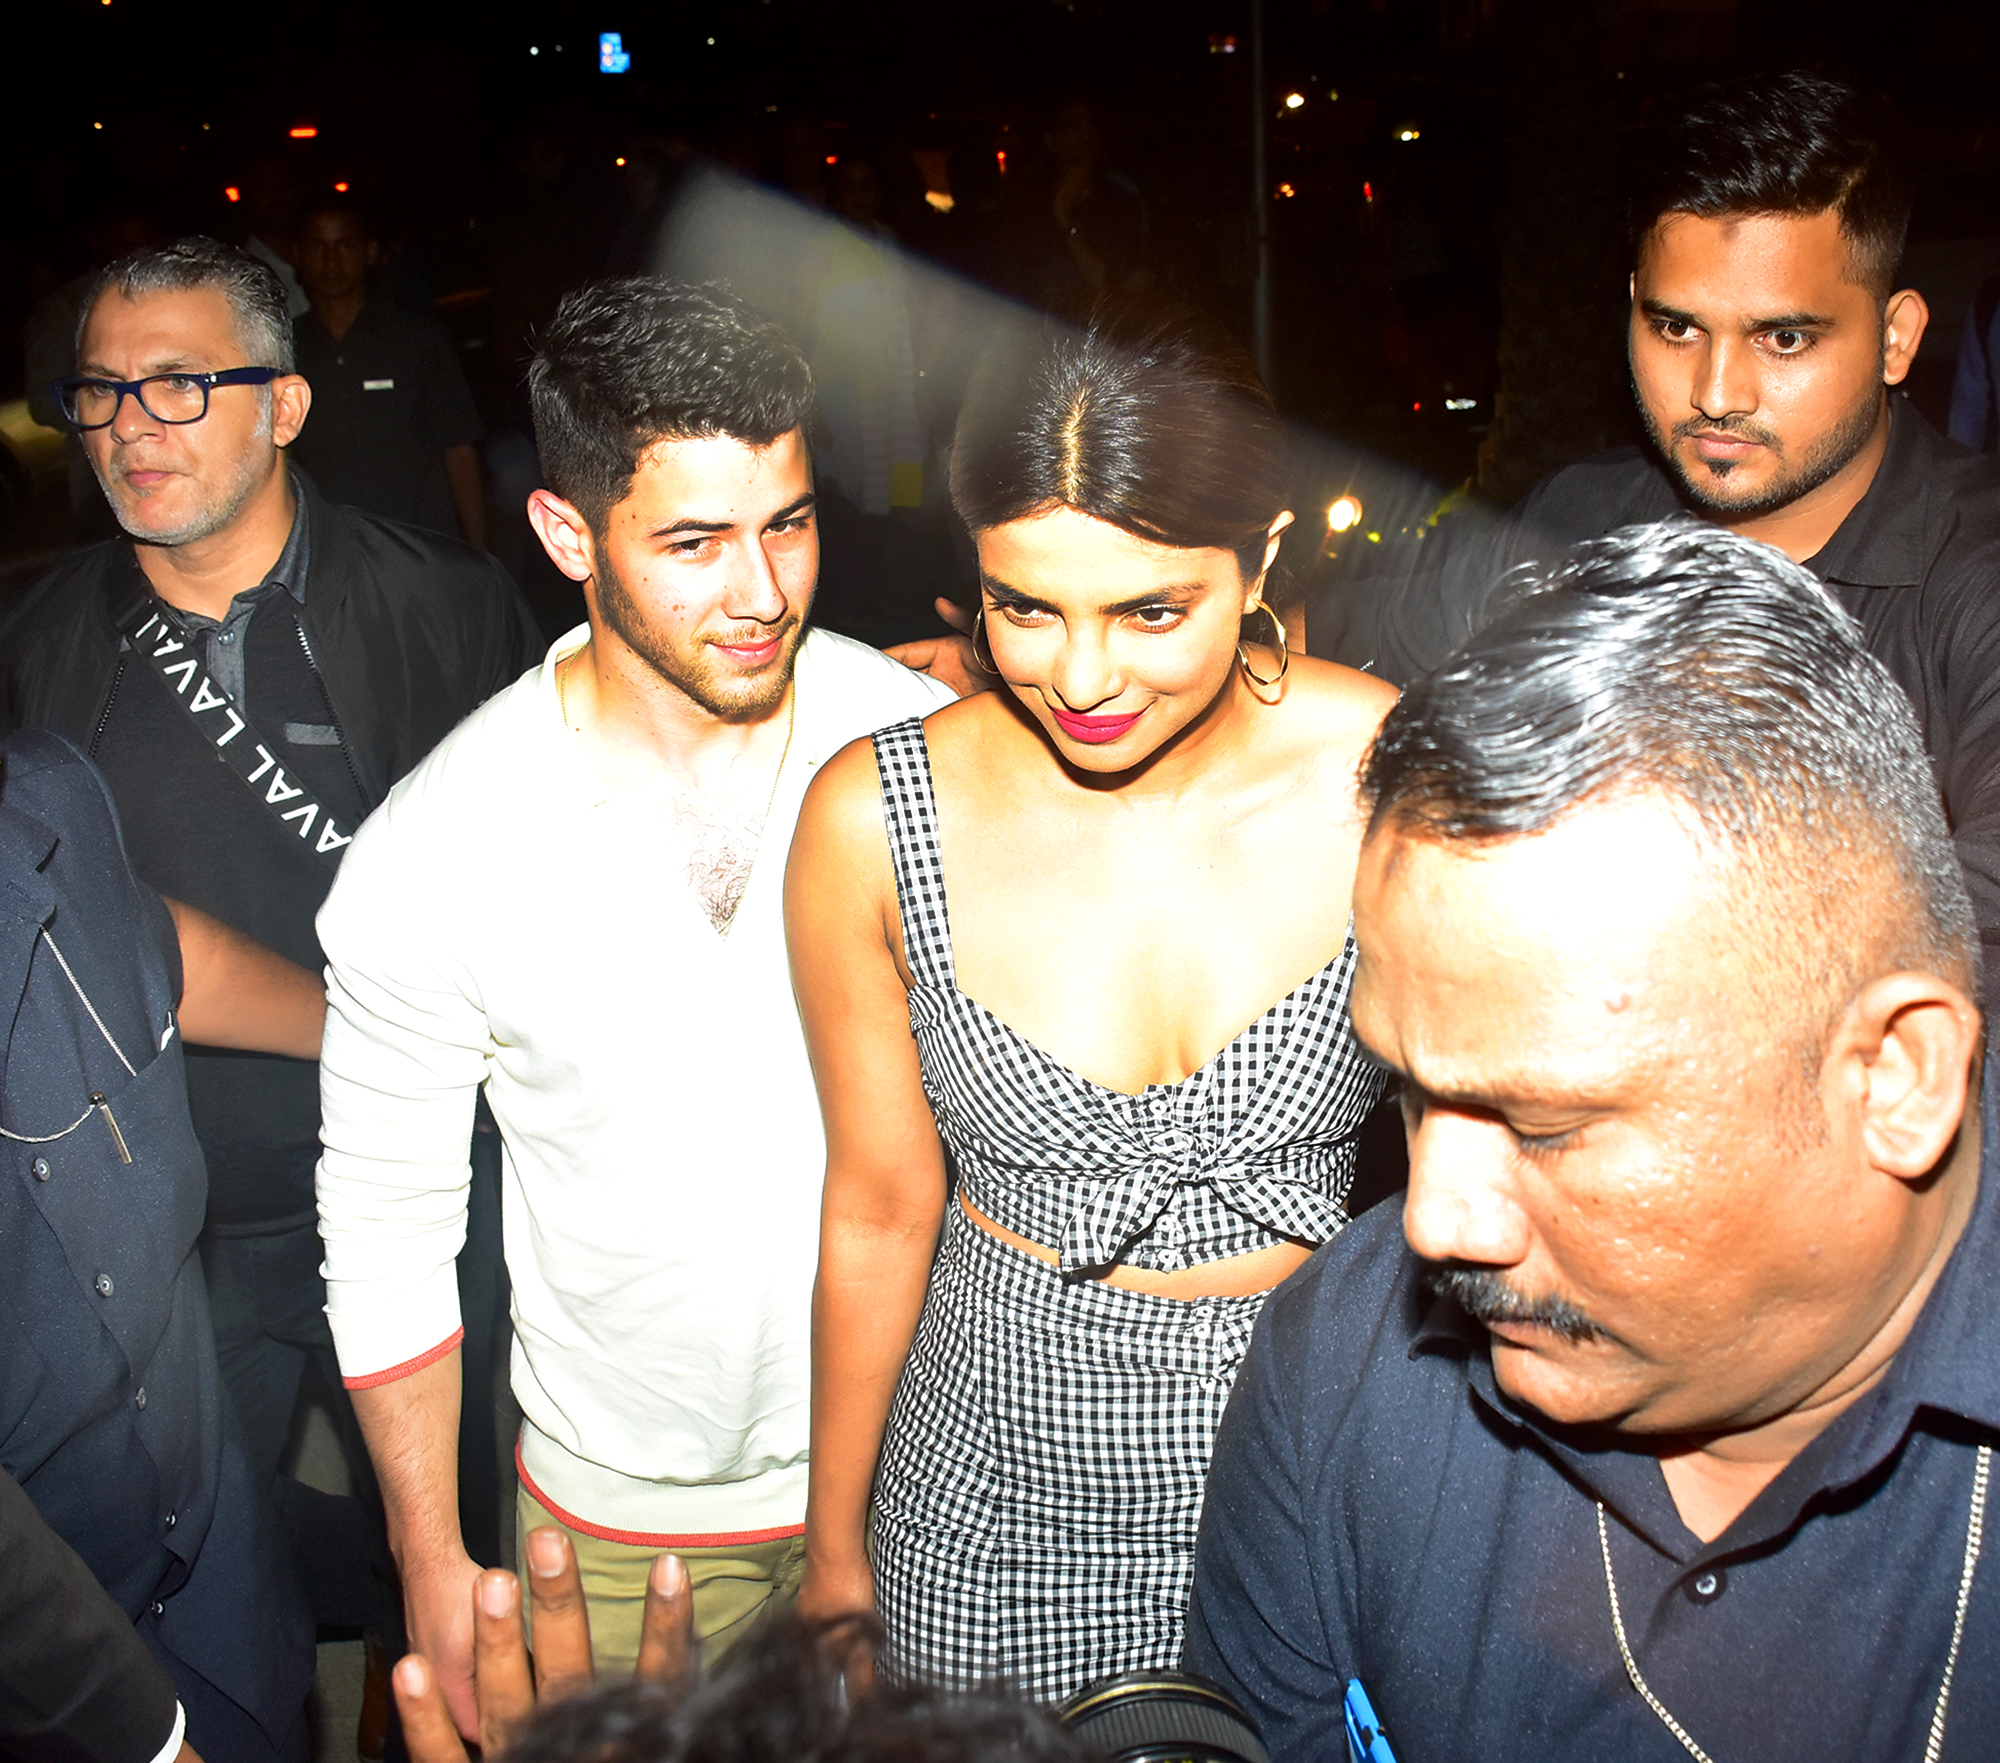 Nick Jonas just made his relationship with Priyanka Chopra official!